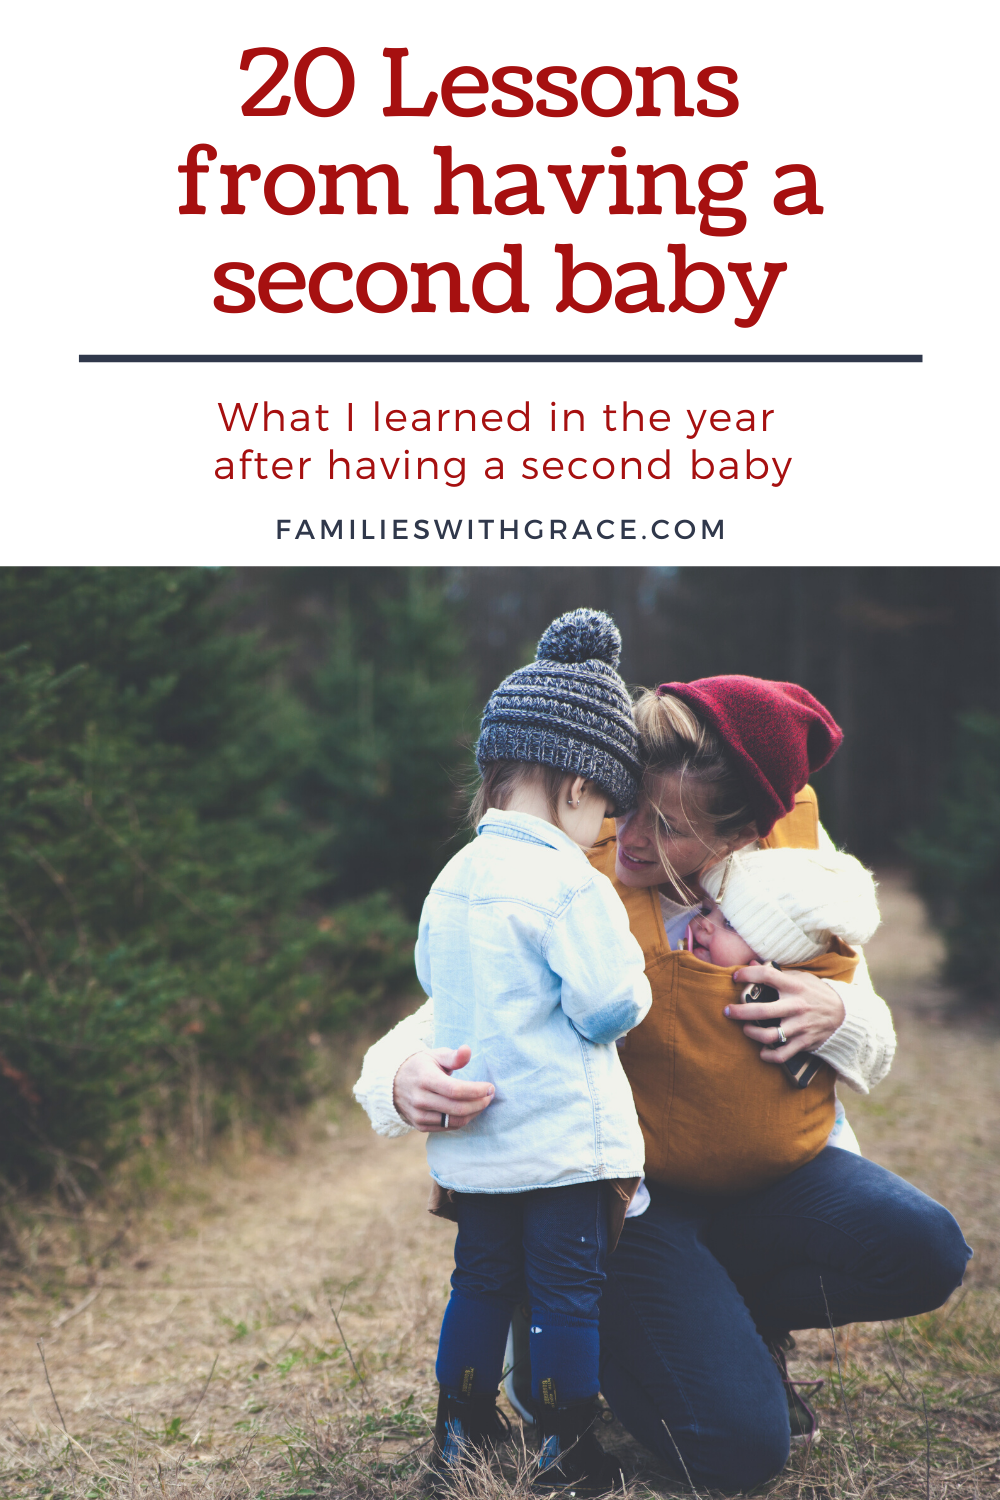 20 Lessons from having a second baby